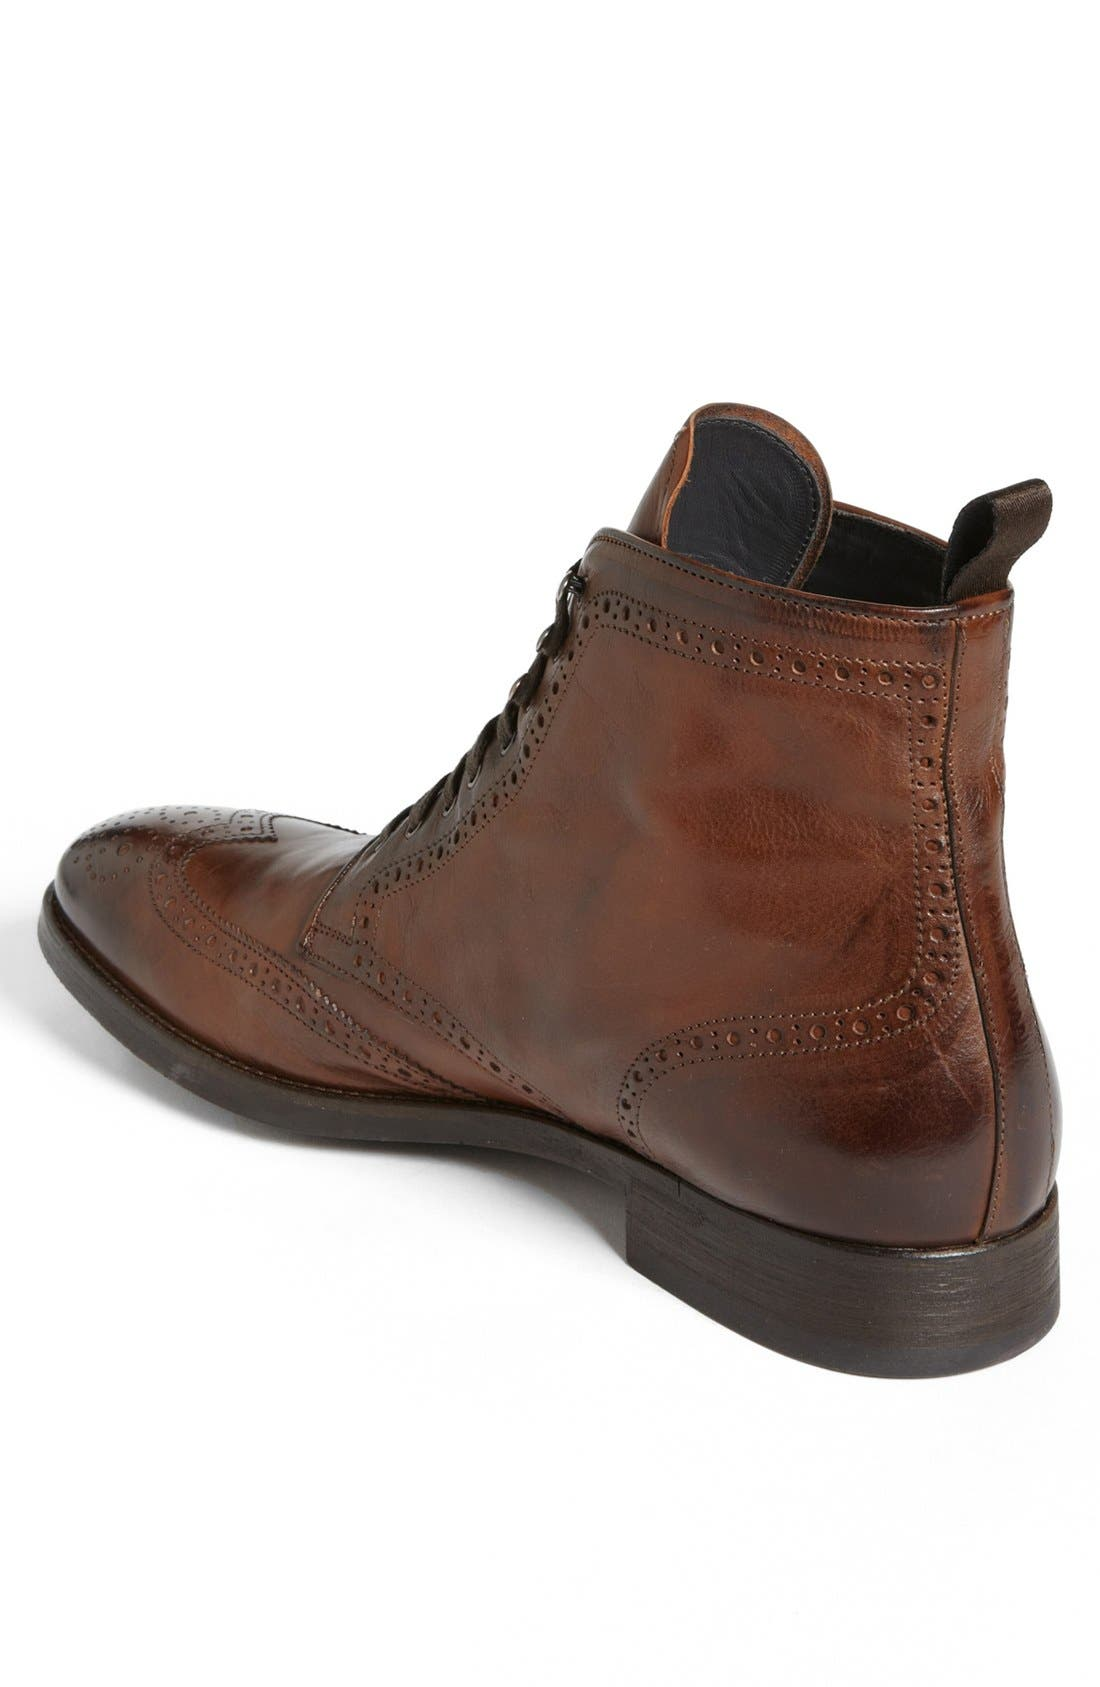 'Brennan' Wingtip Boot,                             Alternate thumbnail 2, color,                             Cognac